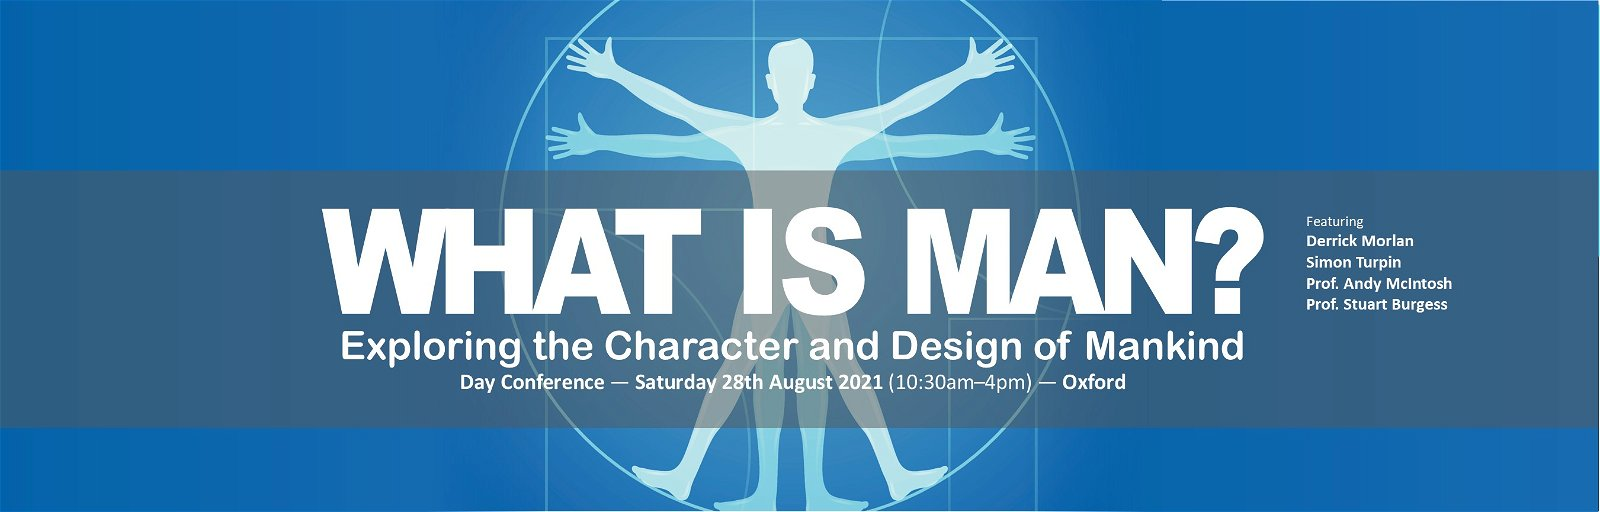 Day Conference: What Is Man?